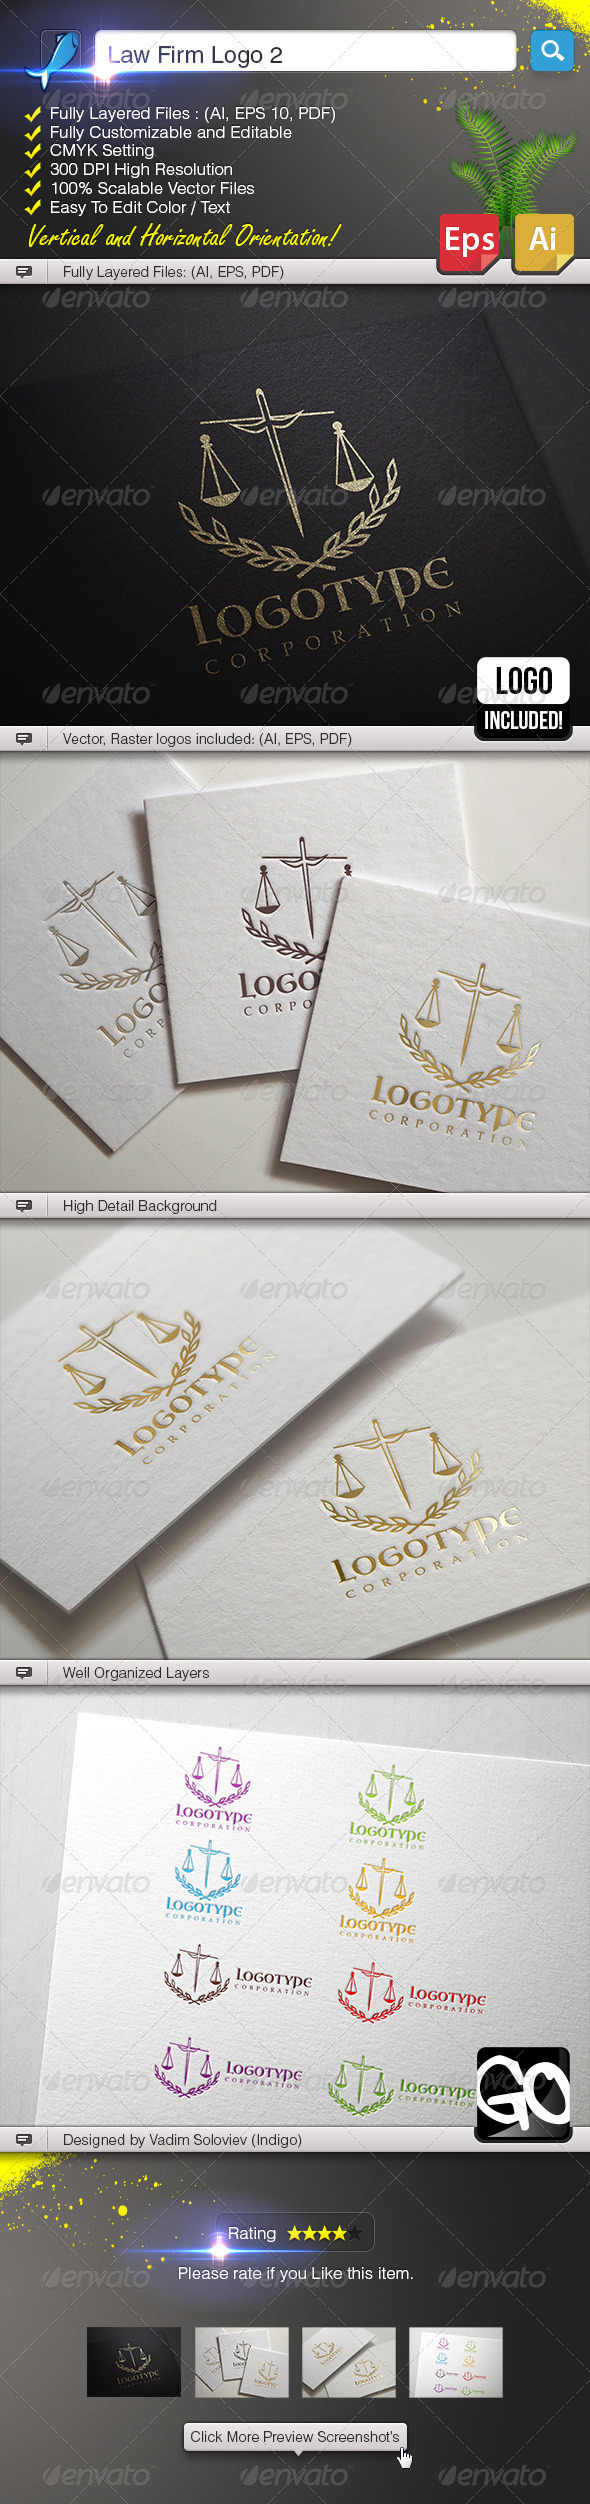 GraphicRiver Law Firm Logo 2 5970501